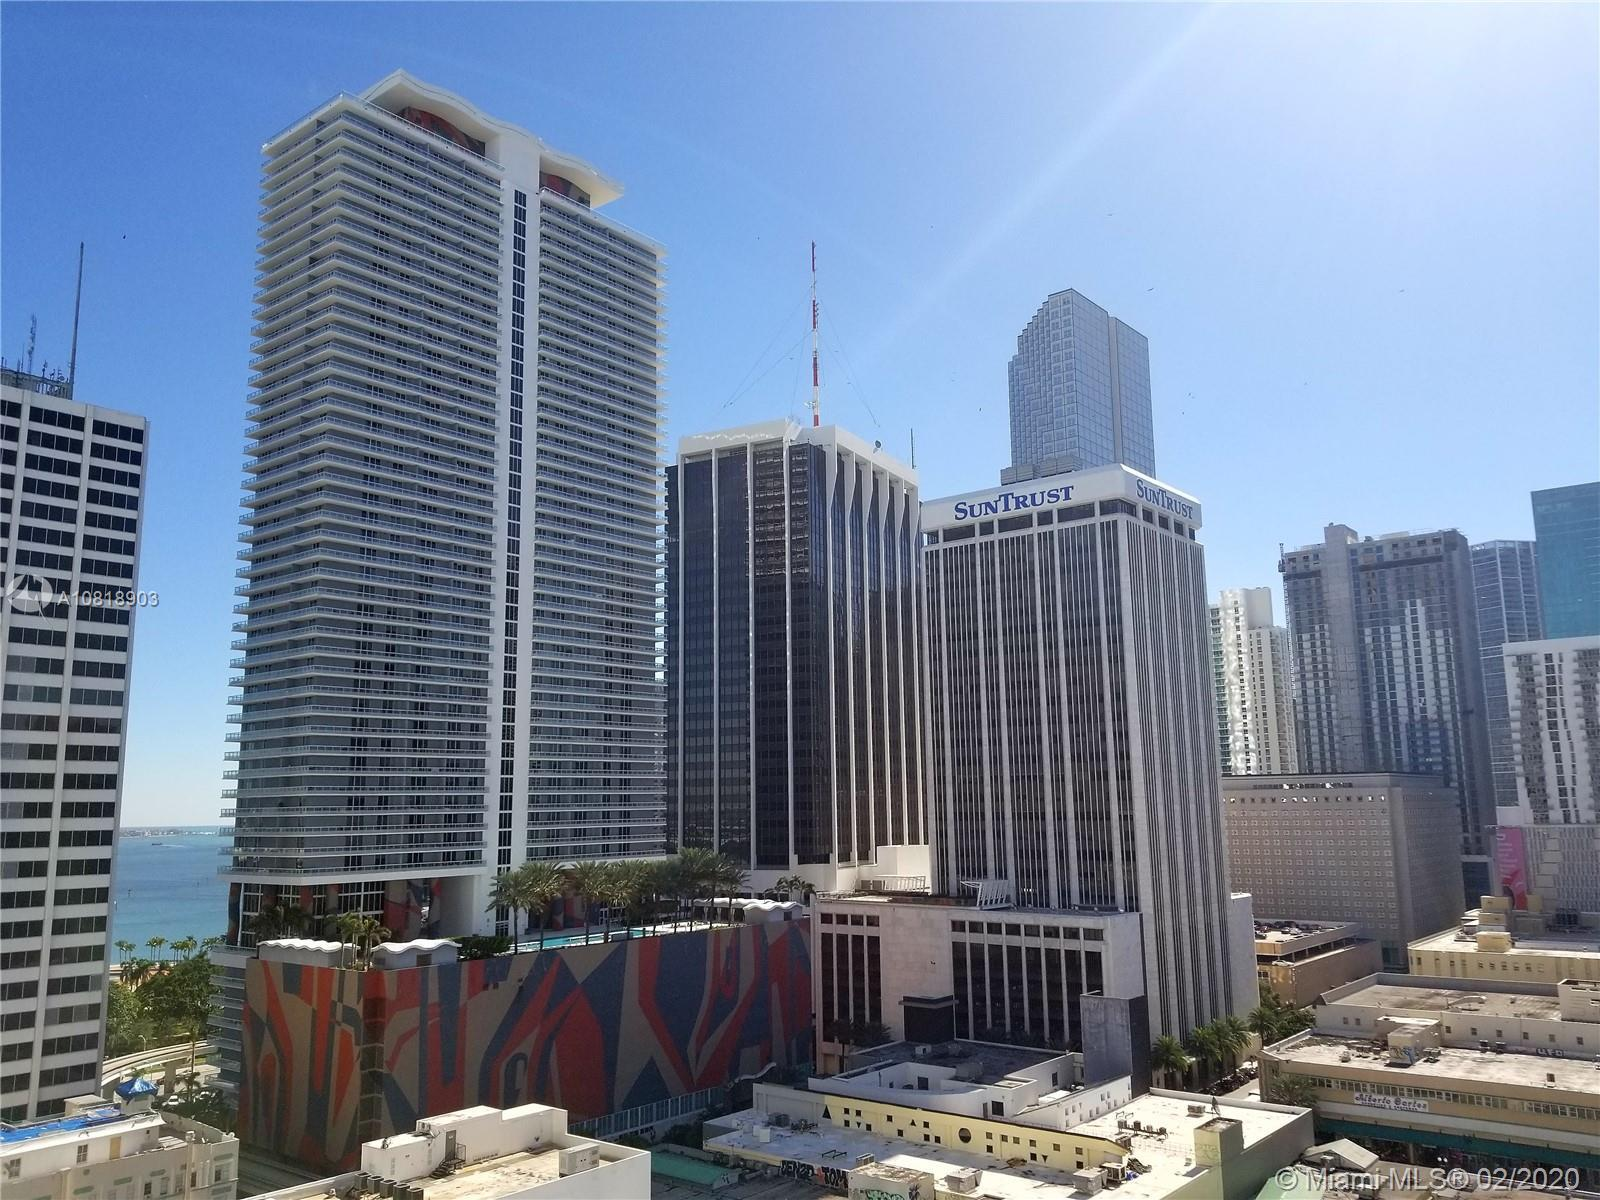 16th floor 2 bedroom condo located in the heart of Downtown Miami. Modern Kitchen with High gloss It